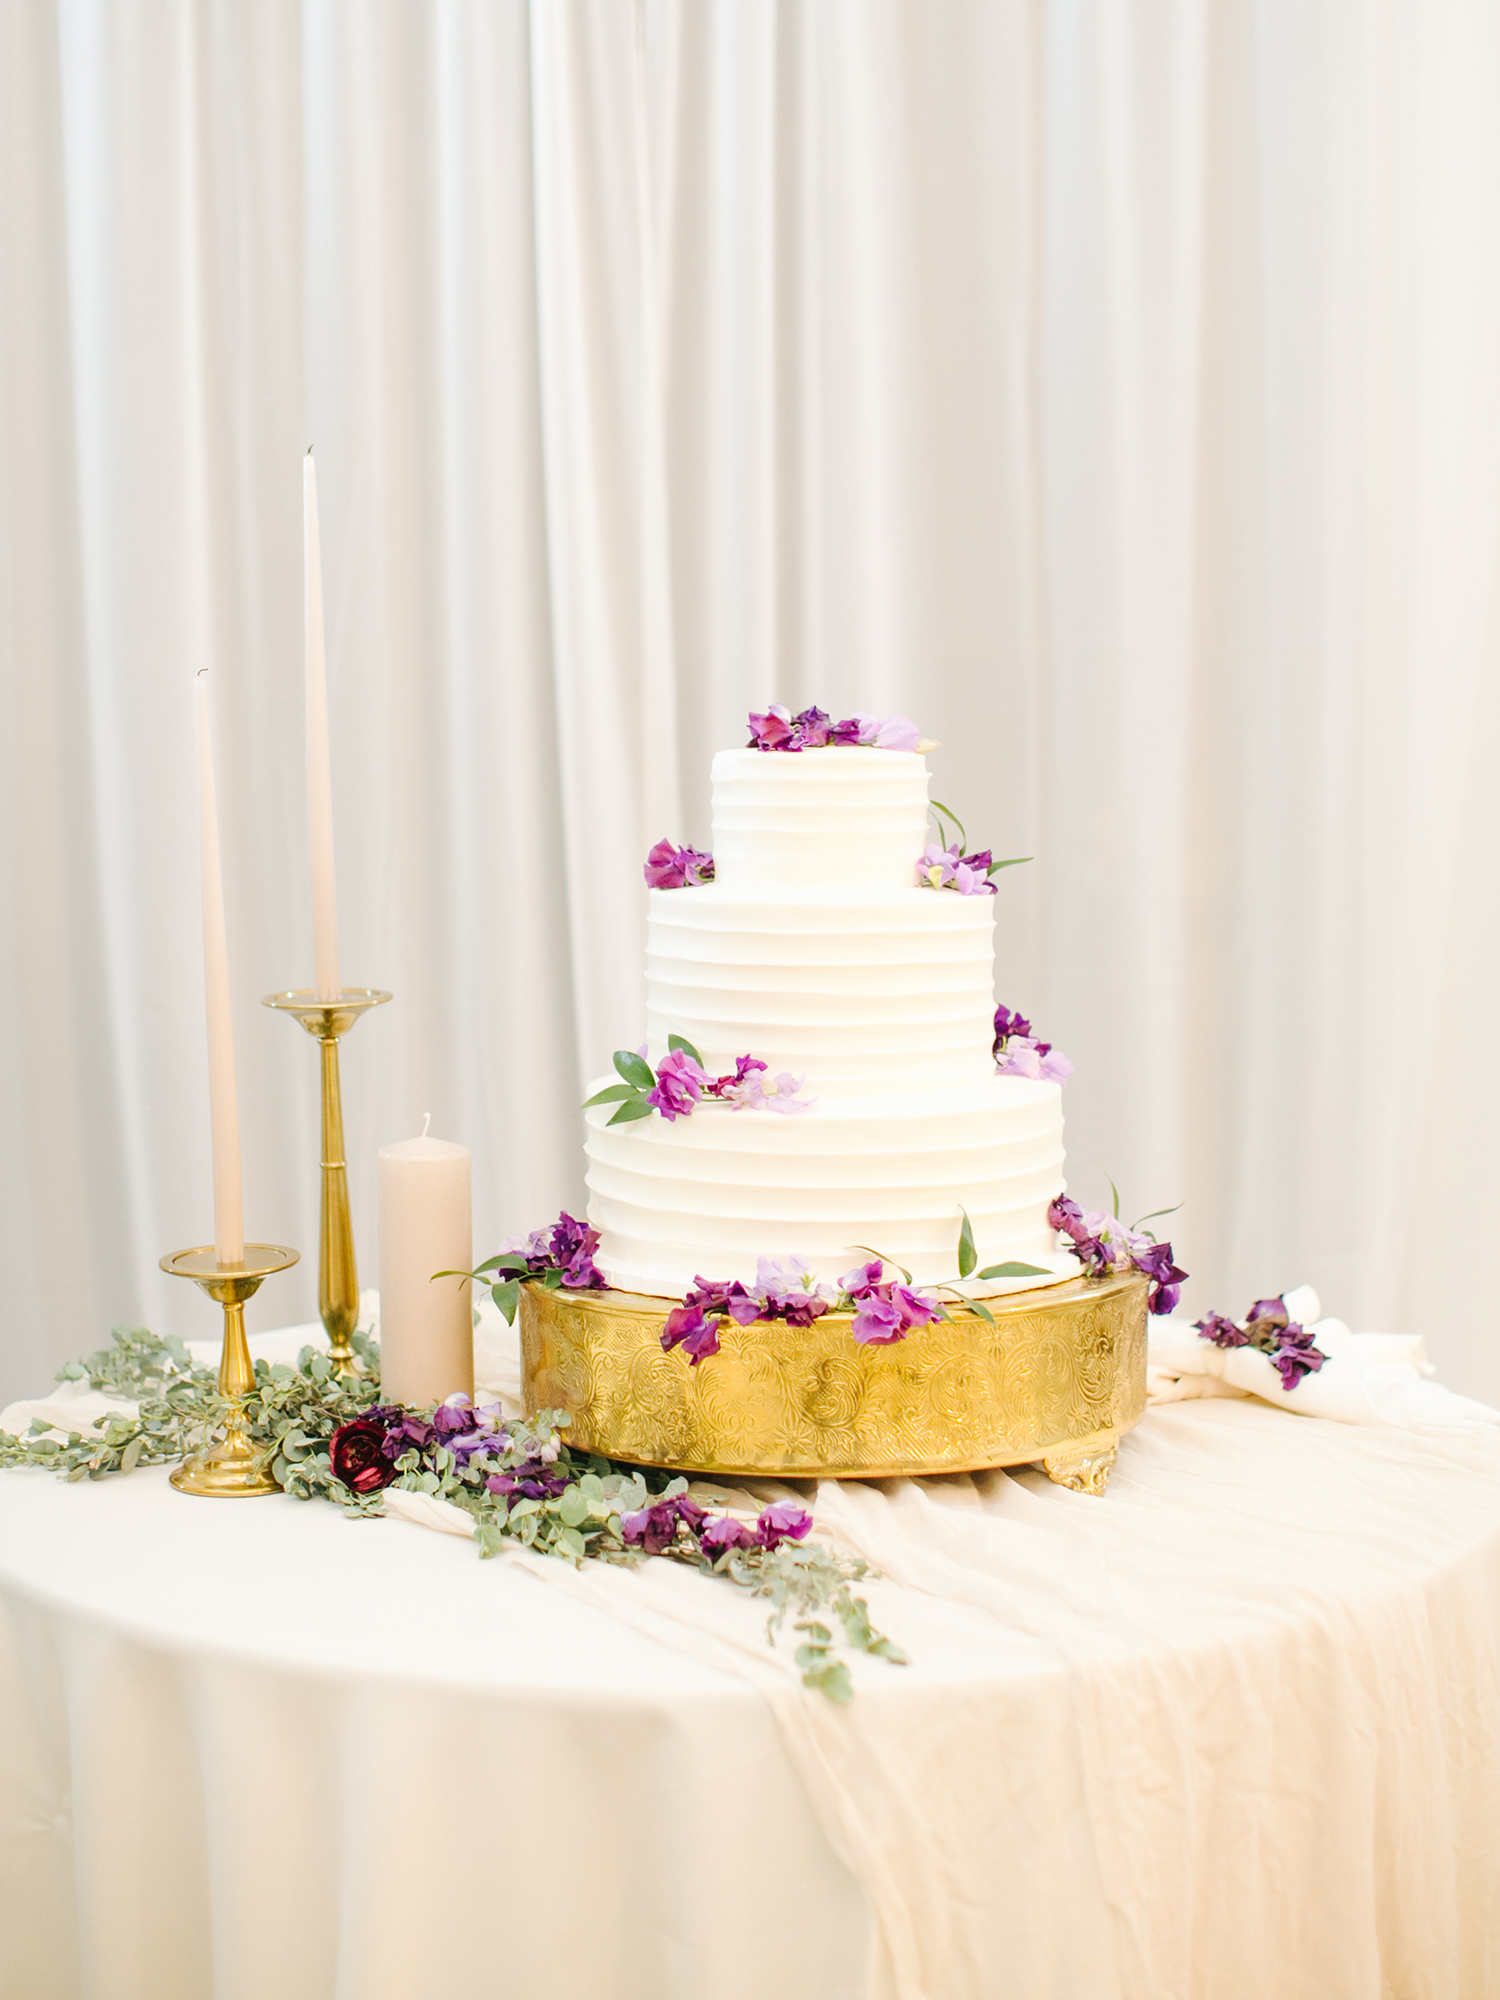 molly josh wedding cake on golden stand